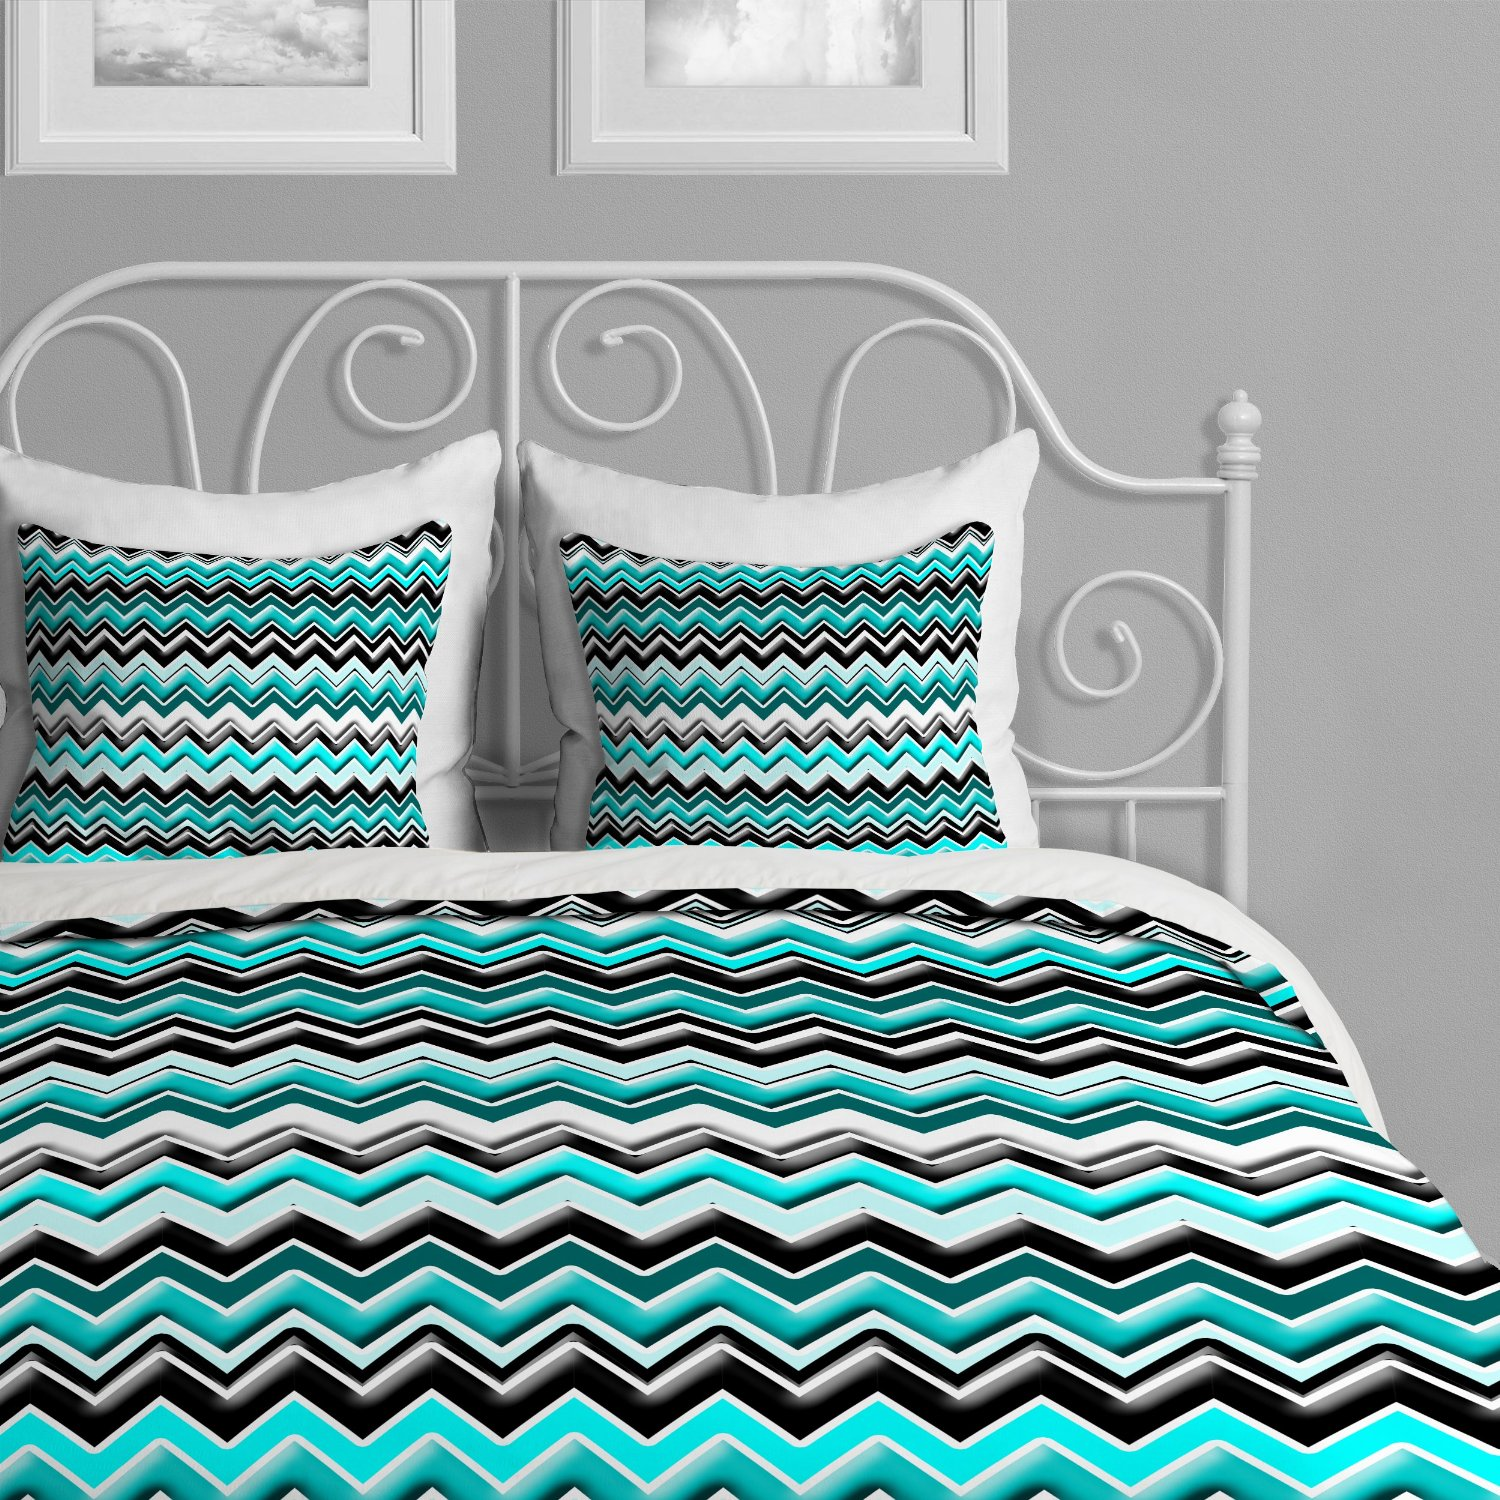 Modern Turquoise Black And White Bedding Sets: Keeping Busy Patterns In  Check